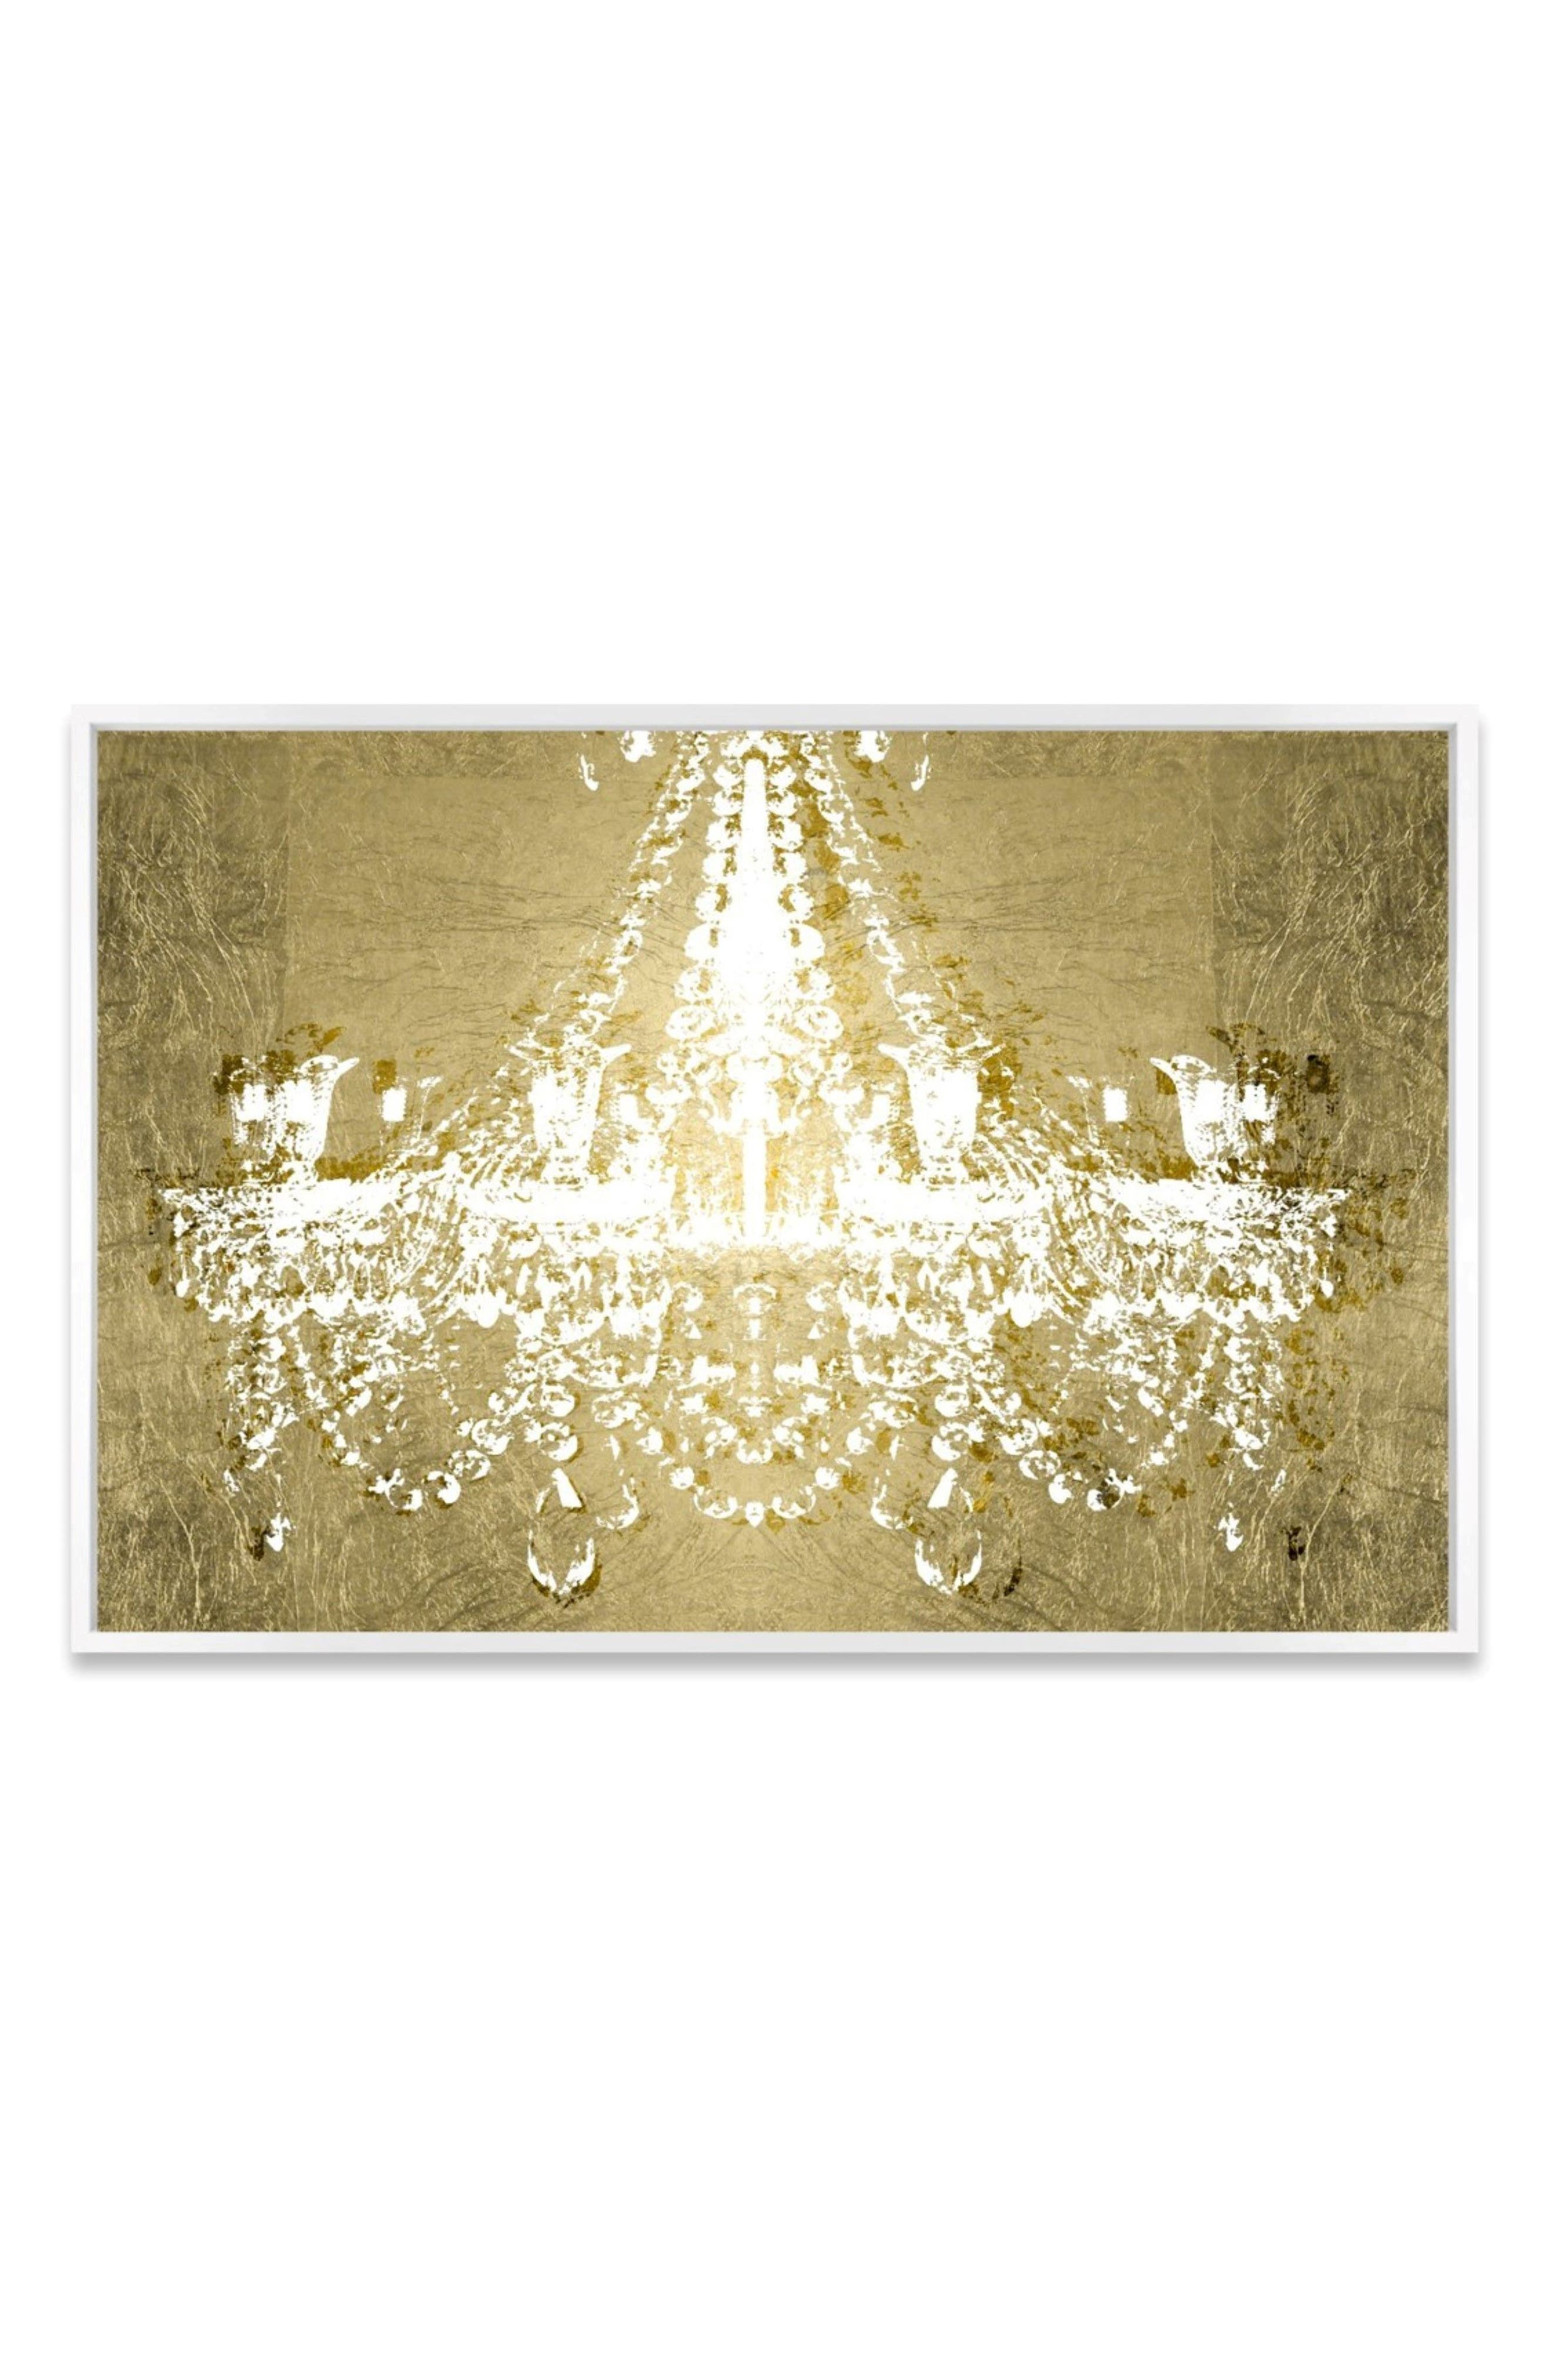 Dramatic Entrance Canvas Wall Art,                         Main,                         color, Metallic Gold